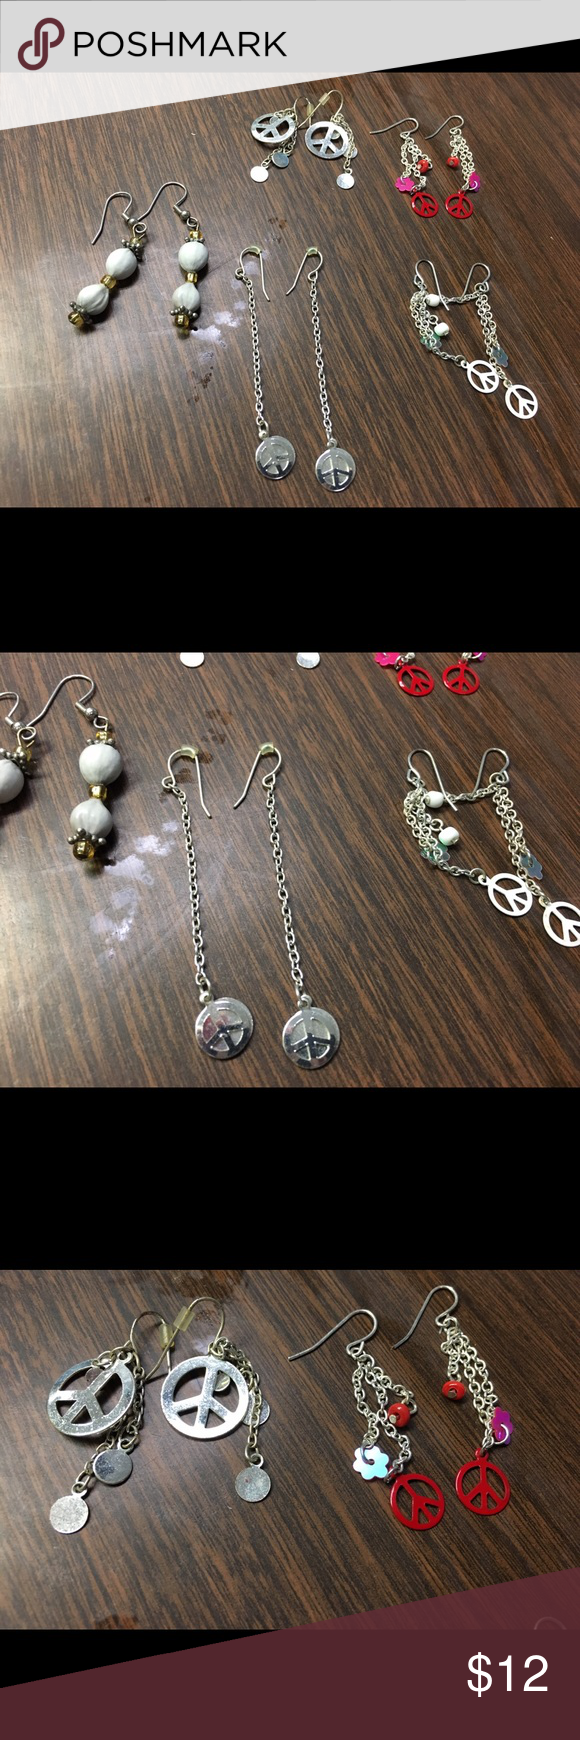 Download Bundle of cute peace sign earrings and beads Super cute ...